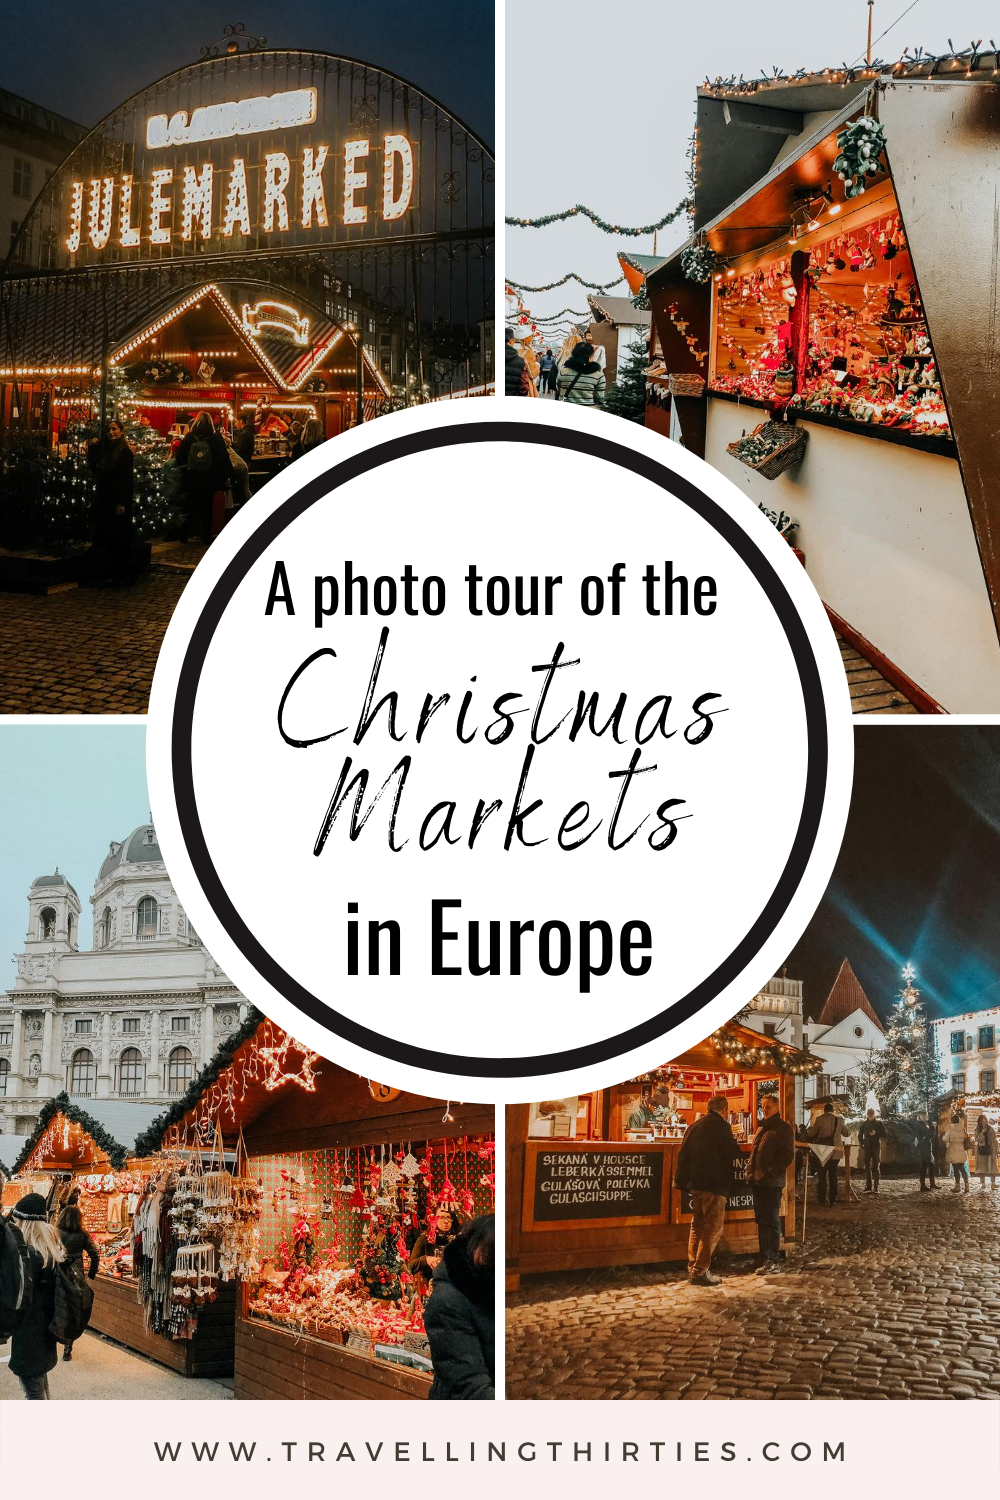 2020 Christmas Markets Germany Tours Airfare The most beautiful photo tour of the European Christmas Markets in